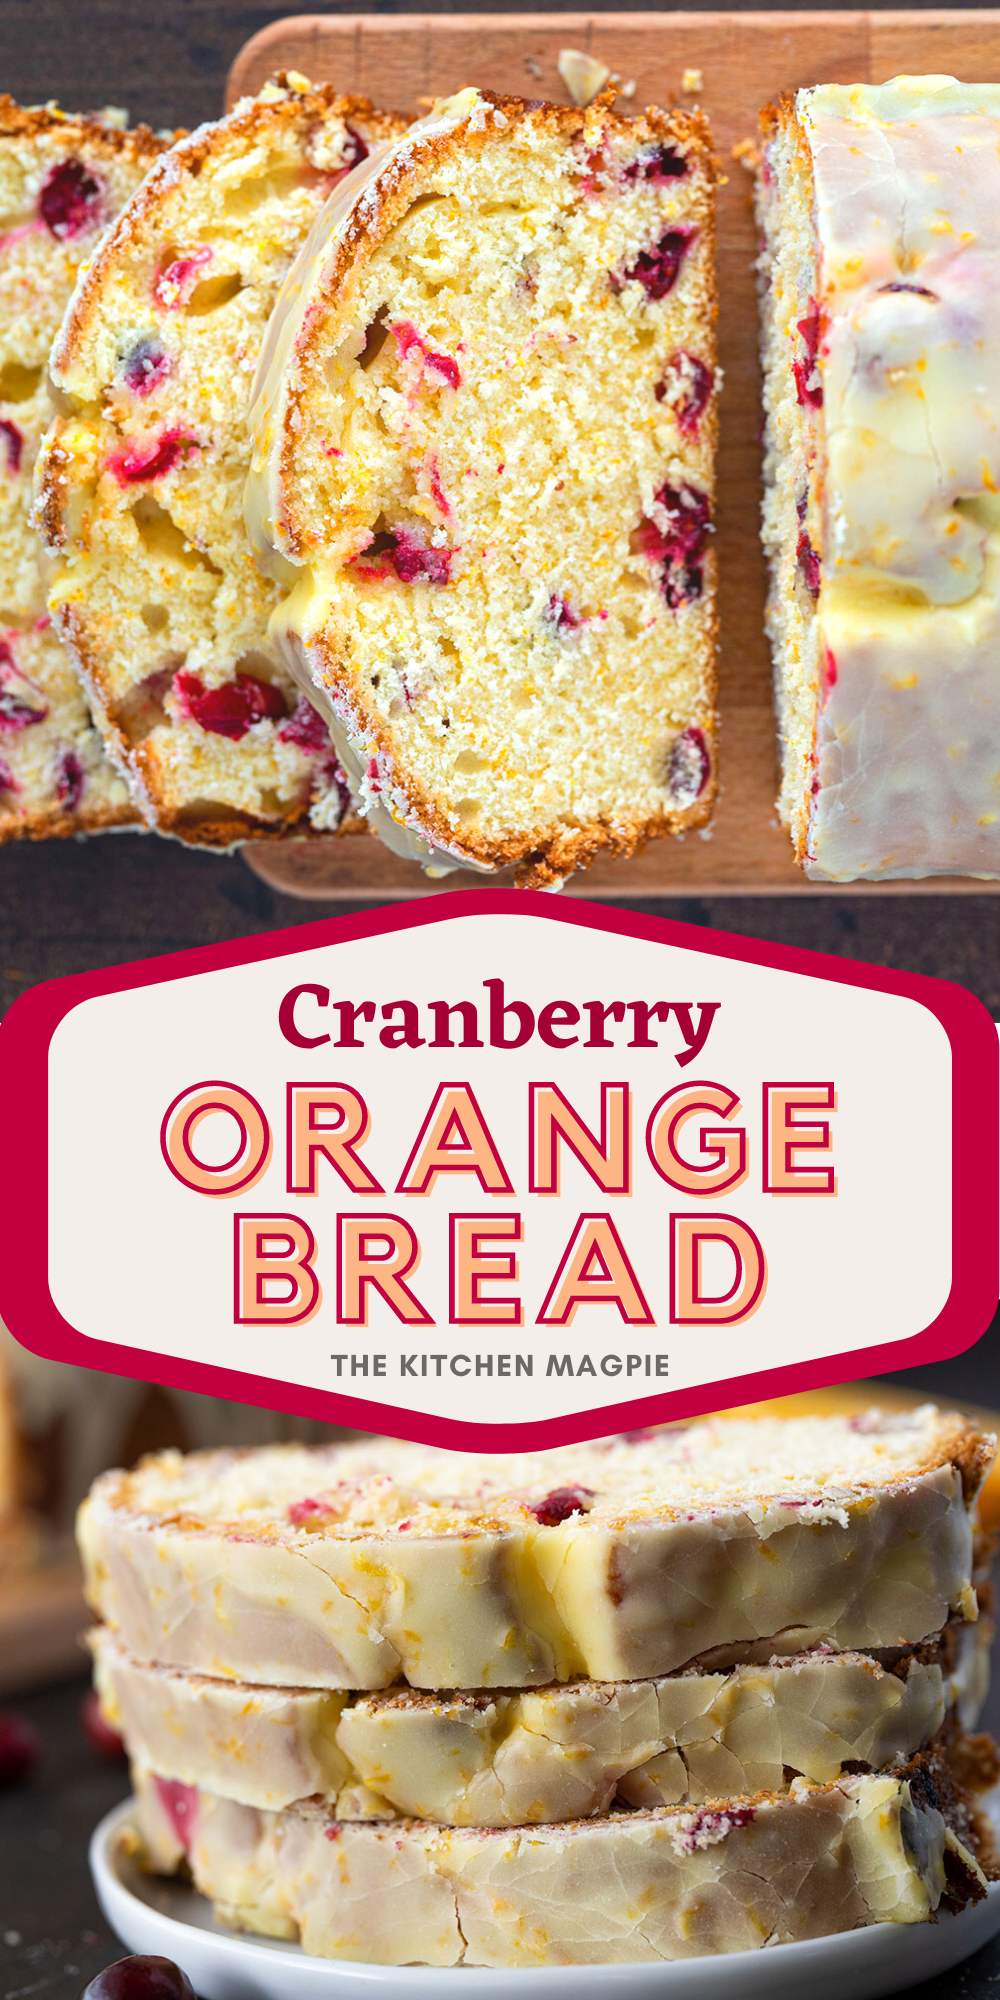 This decadent cranberry orange baked is baked up and drizzled with a fabulous orange icing glaze for the perfect sweet treat!